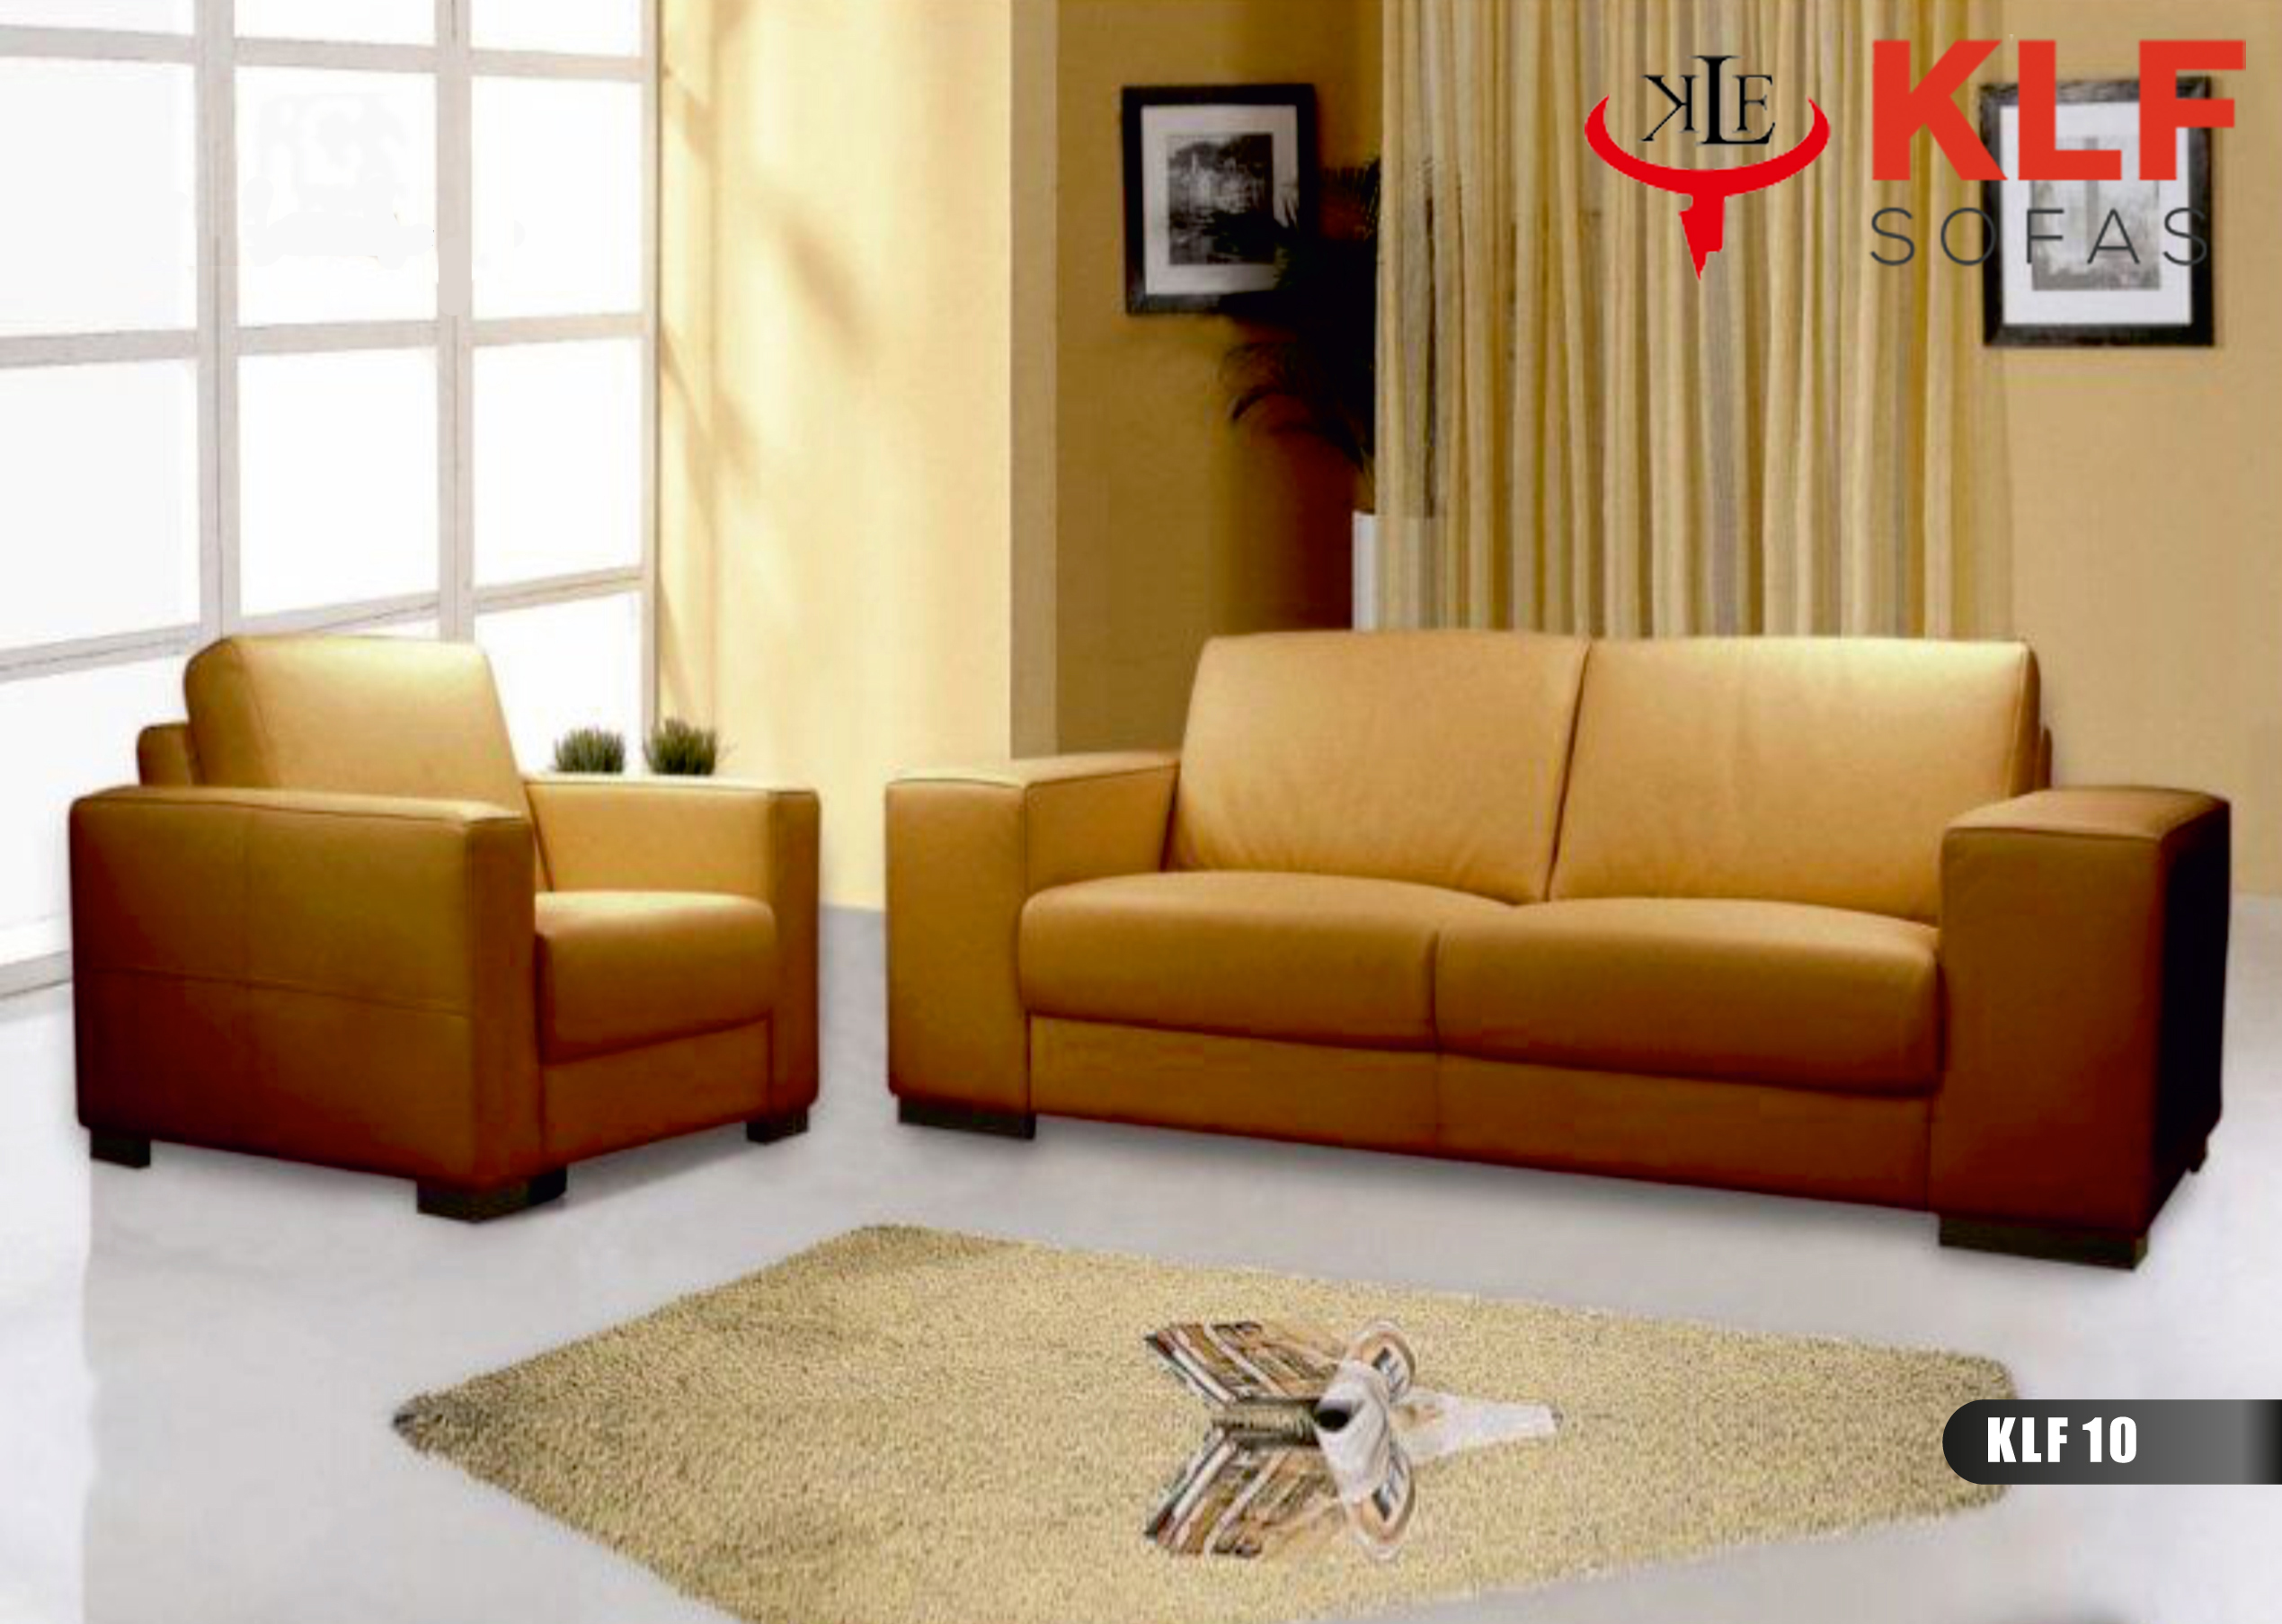 KLF Leather Sofas